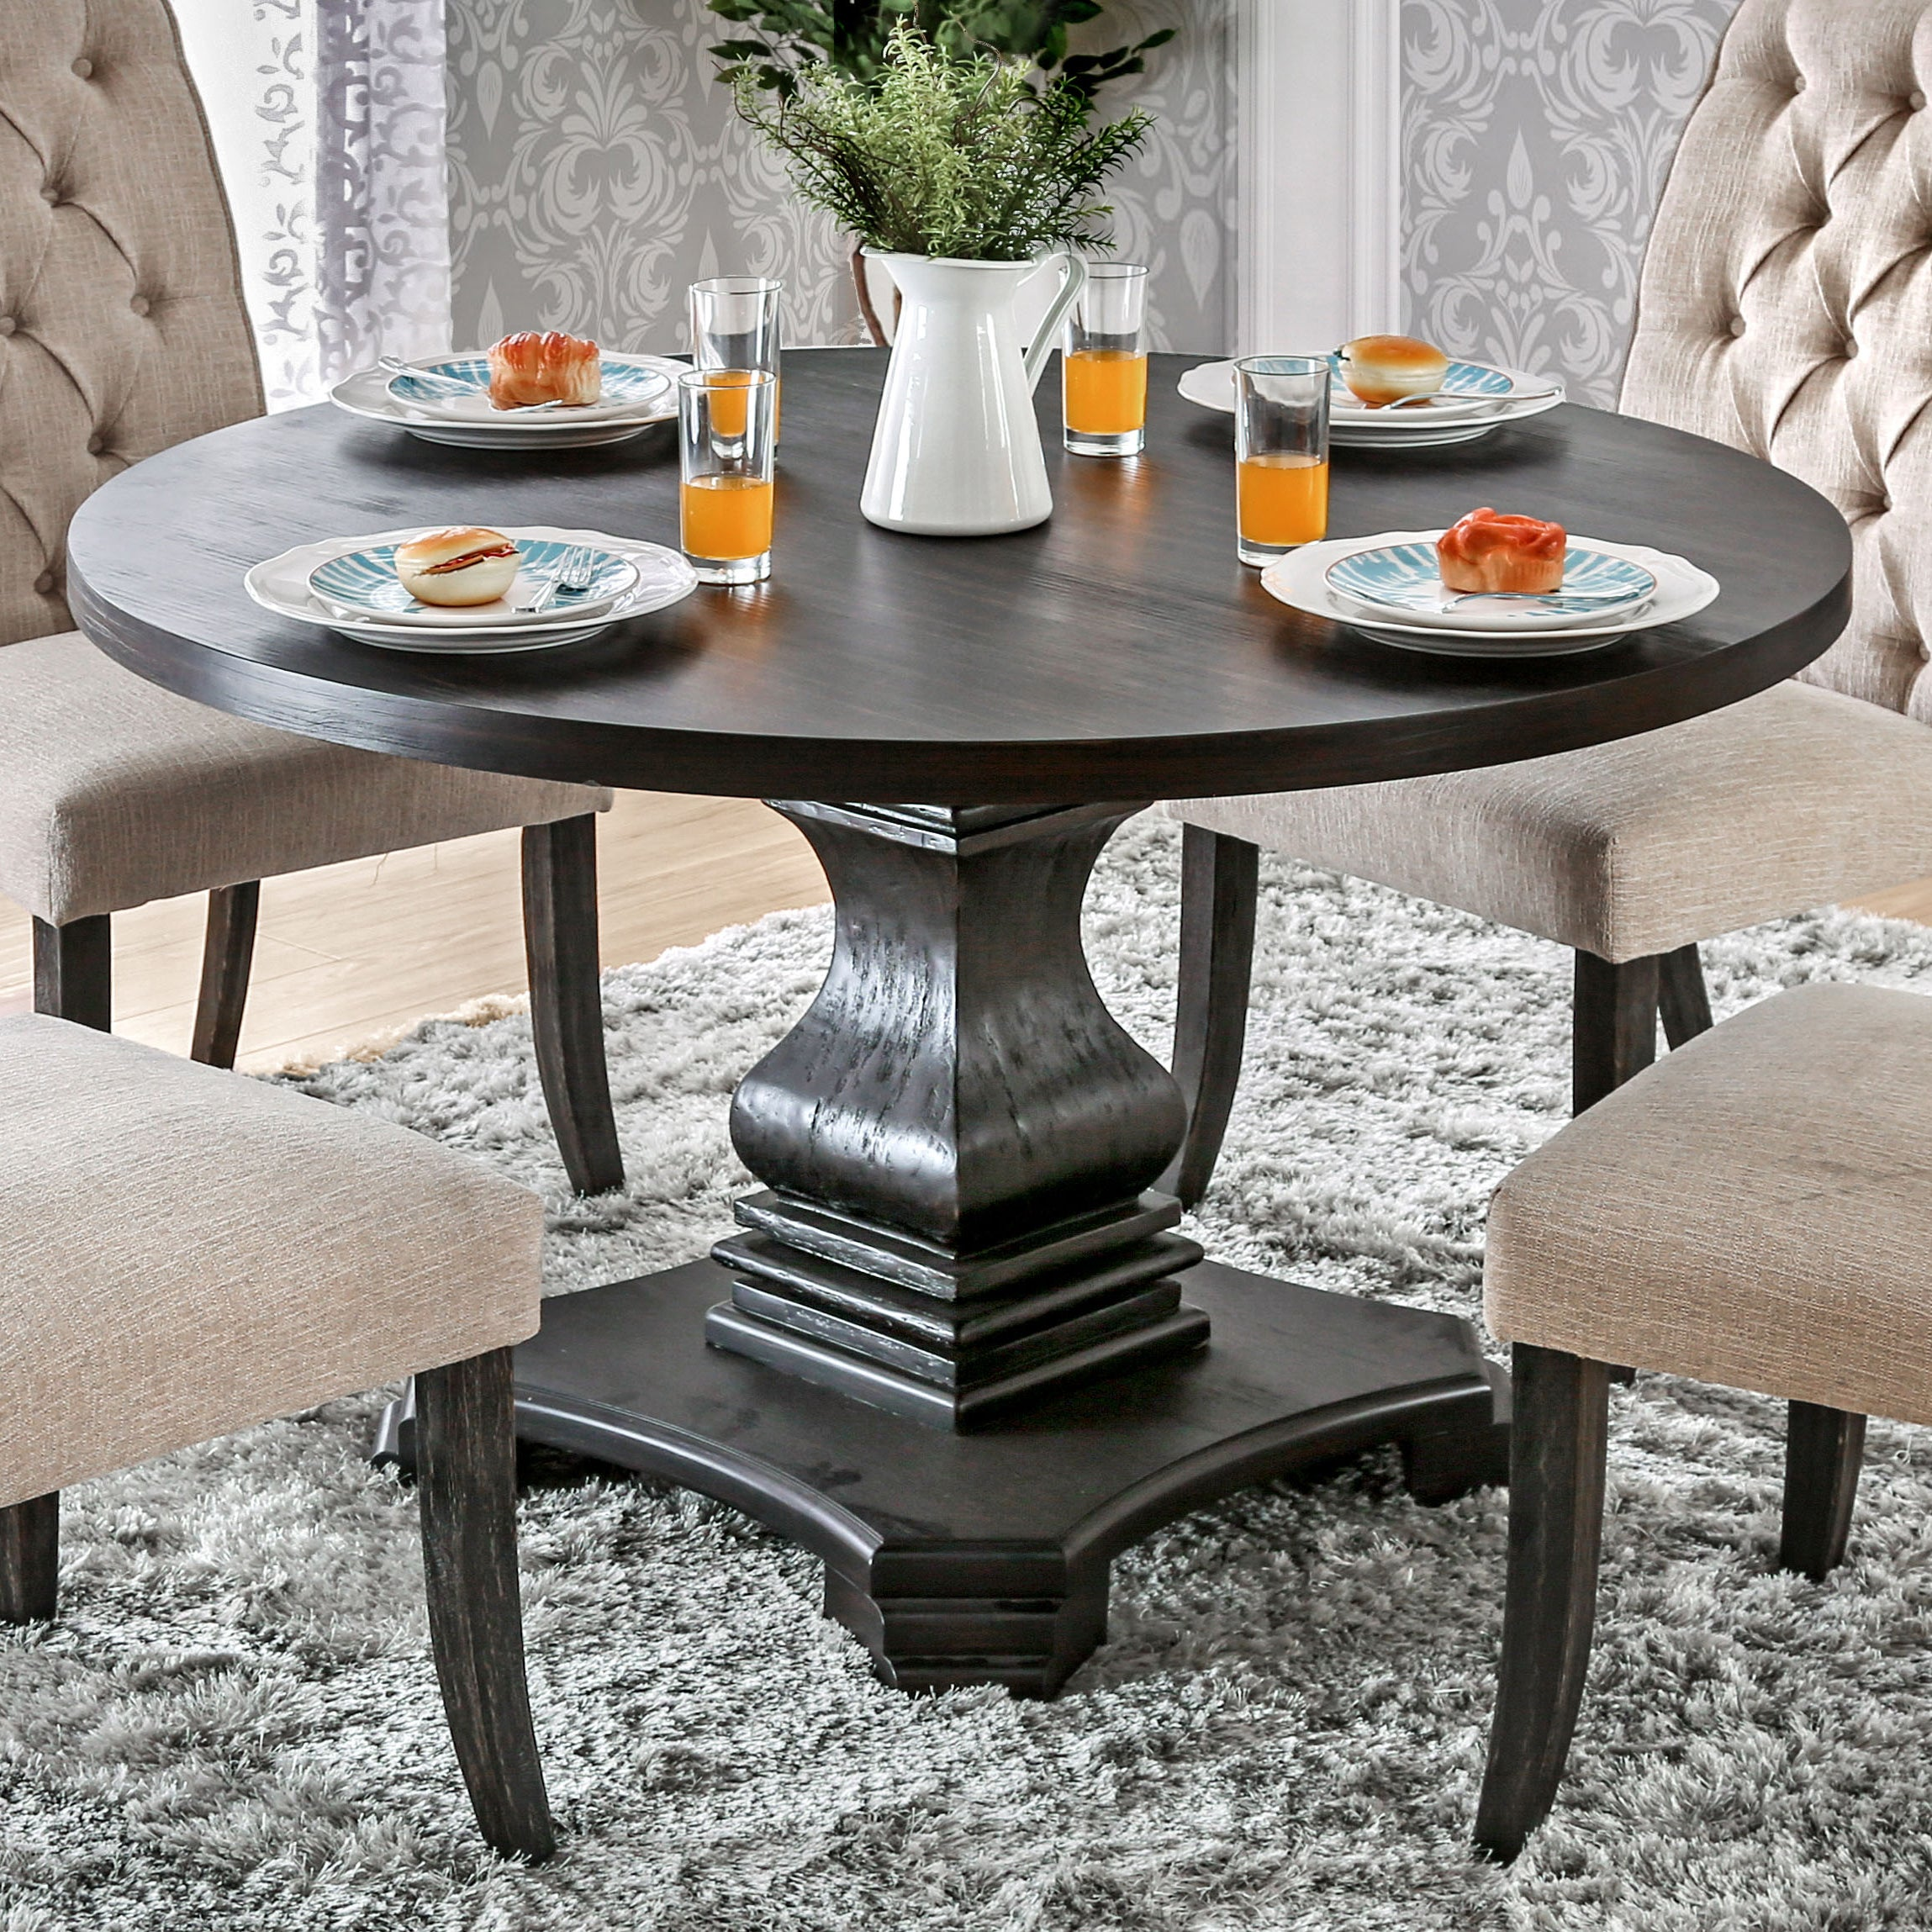 Copper Grove Plachkov Round Black Wood Pedestal Dining Table On Sale Overstock 17520994